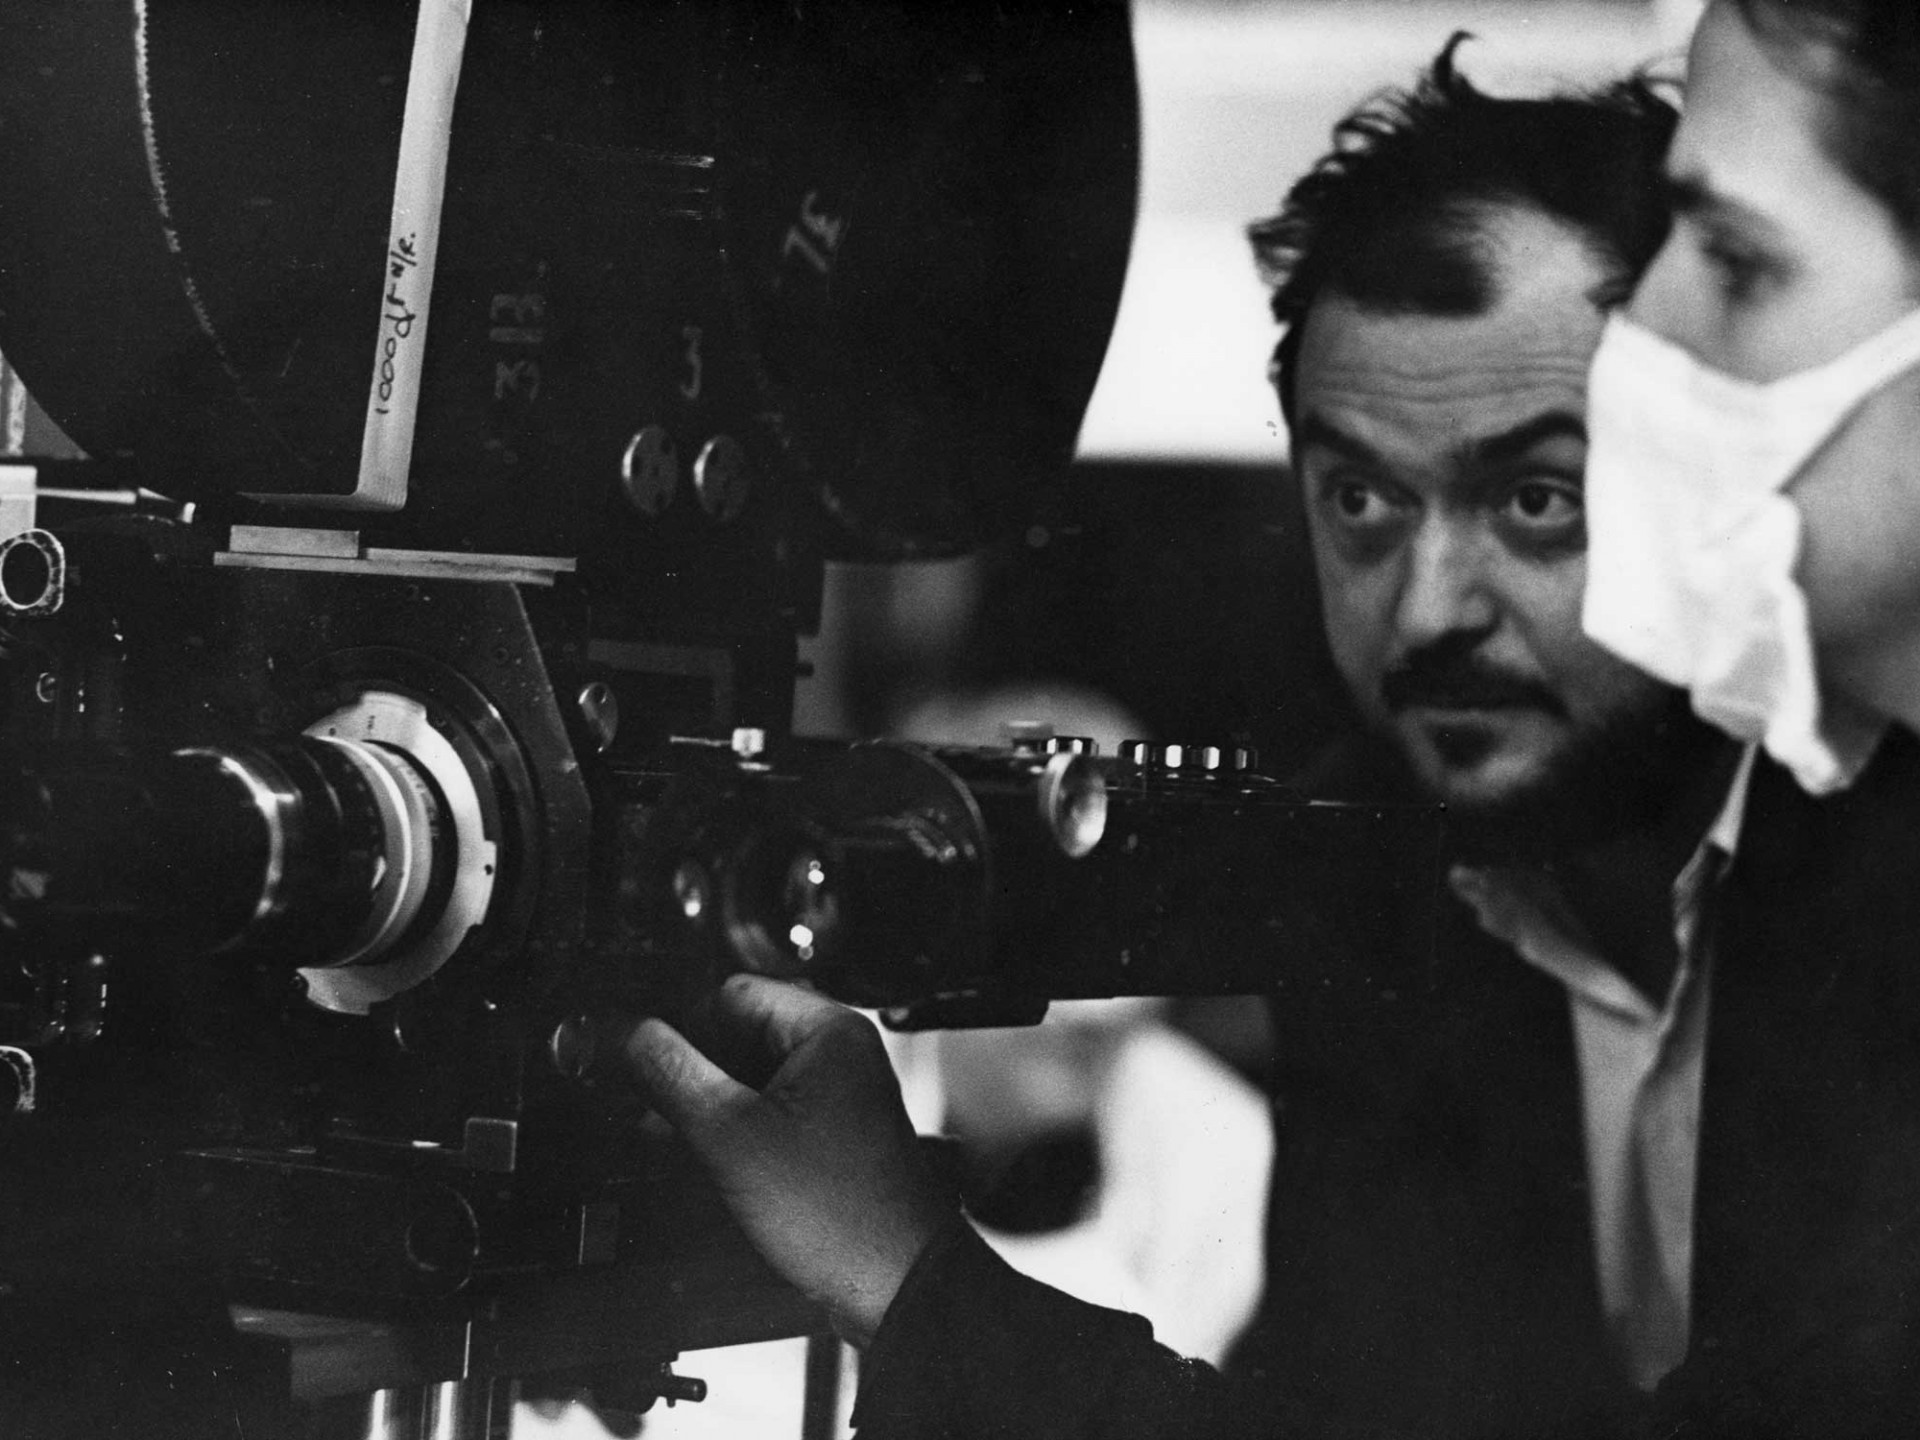 stanley-kubrick-during-production-of-2001-a-space-odyssey-1968